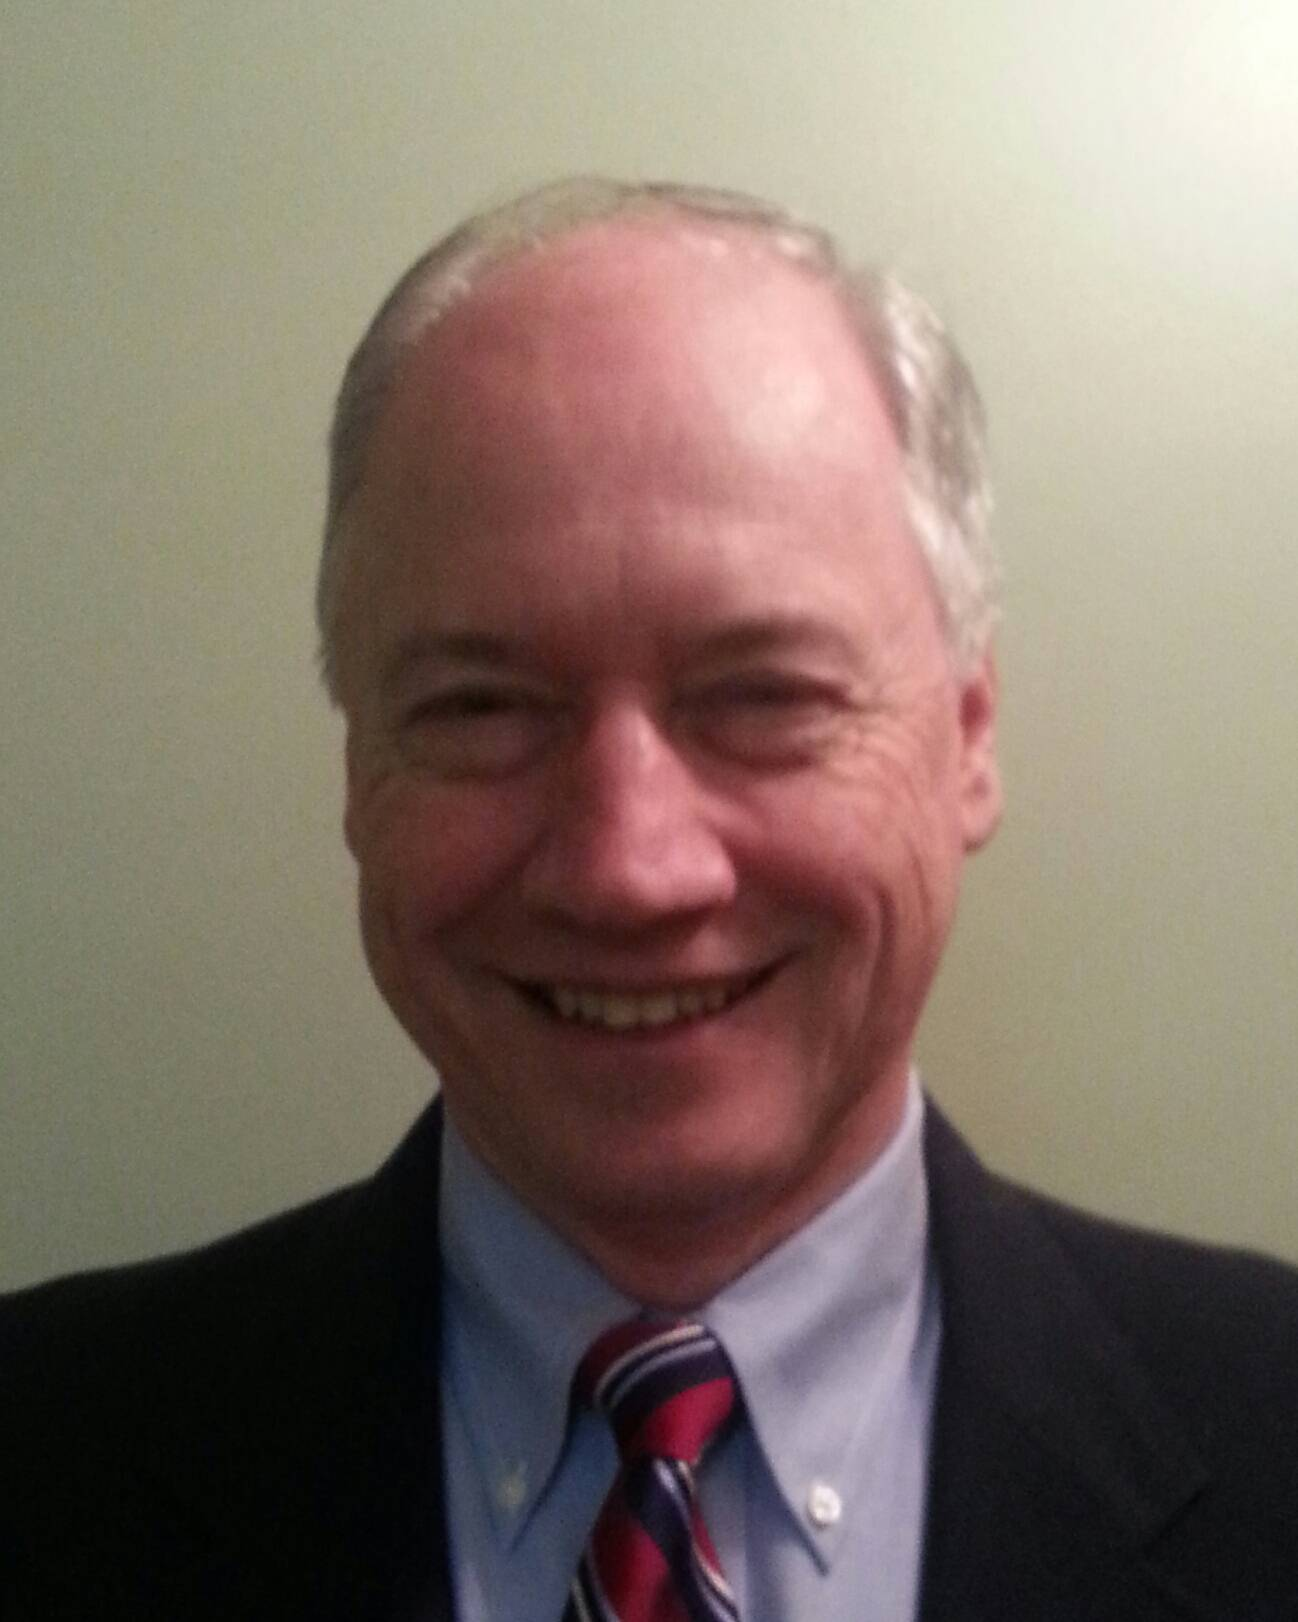 Gerald Bromley, running for Schaumburg Township Library Board (4-year Terms)